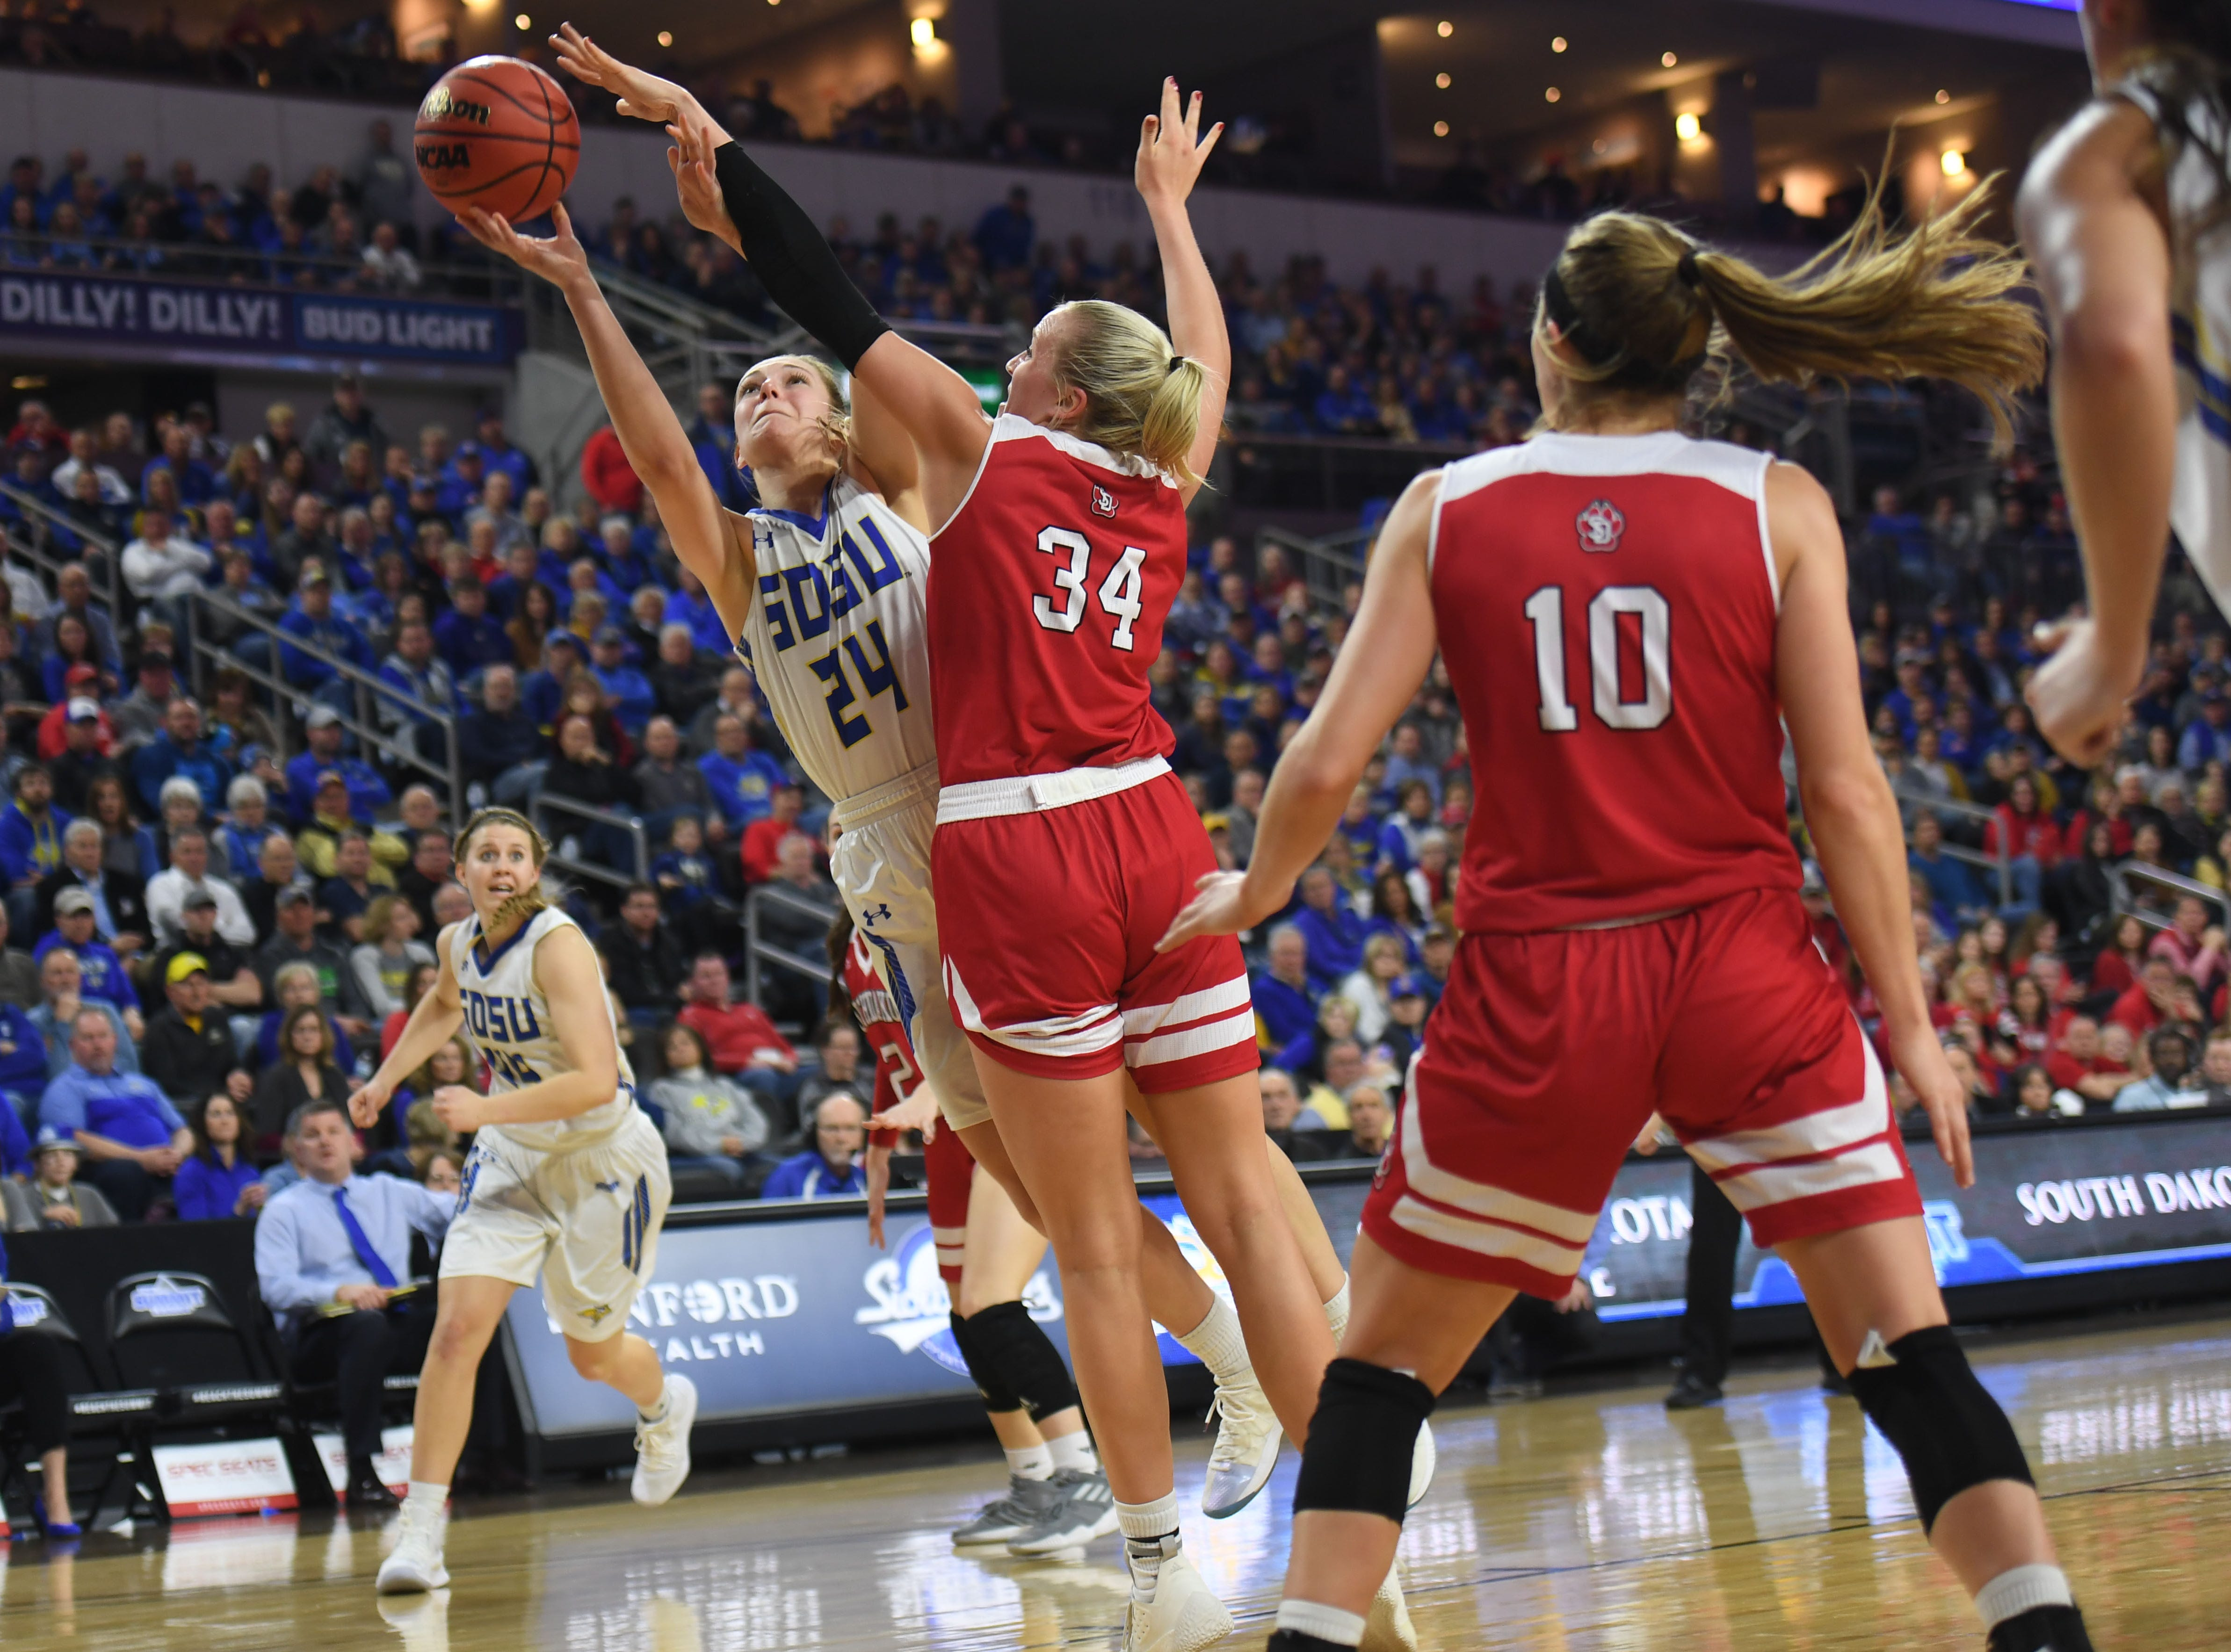 SDSU's Tagyn Larson goes against USD's Hannah Sjerven during the game Tuesday, March 12, in the Summit League women's championship at the Denny Sanford Premier Center in Sioux Falls.